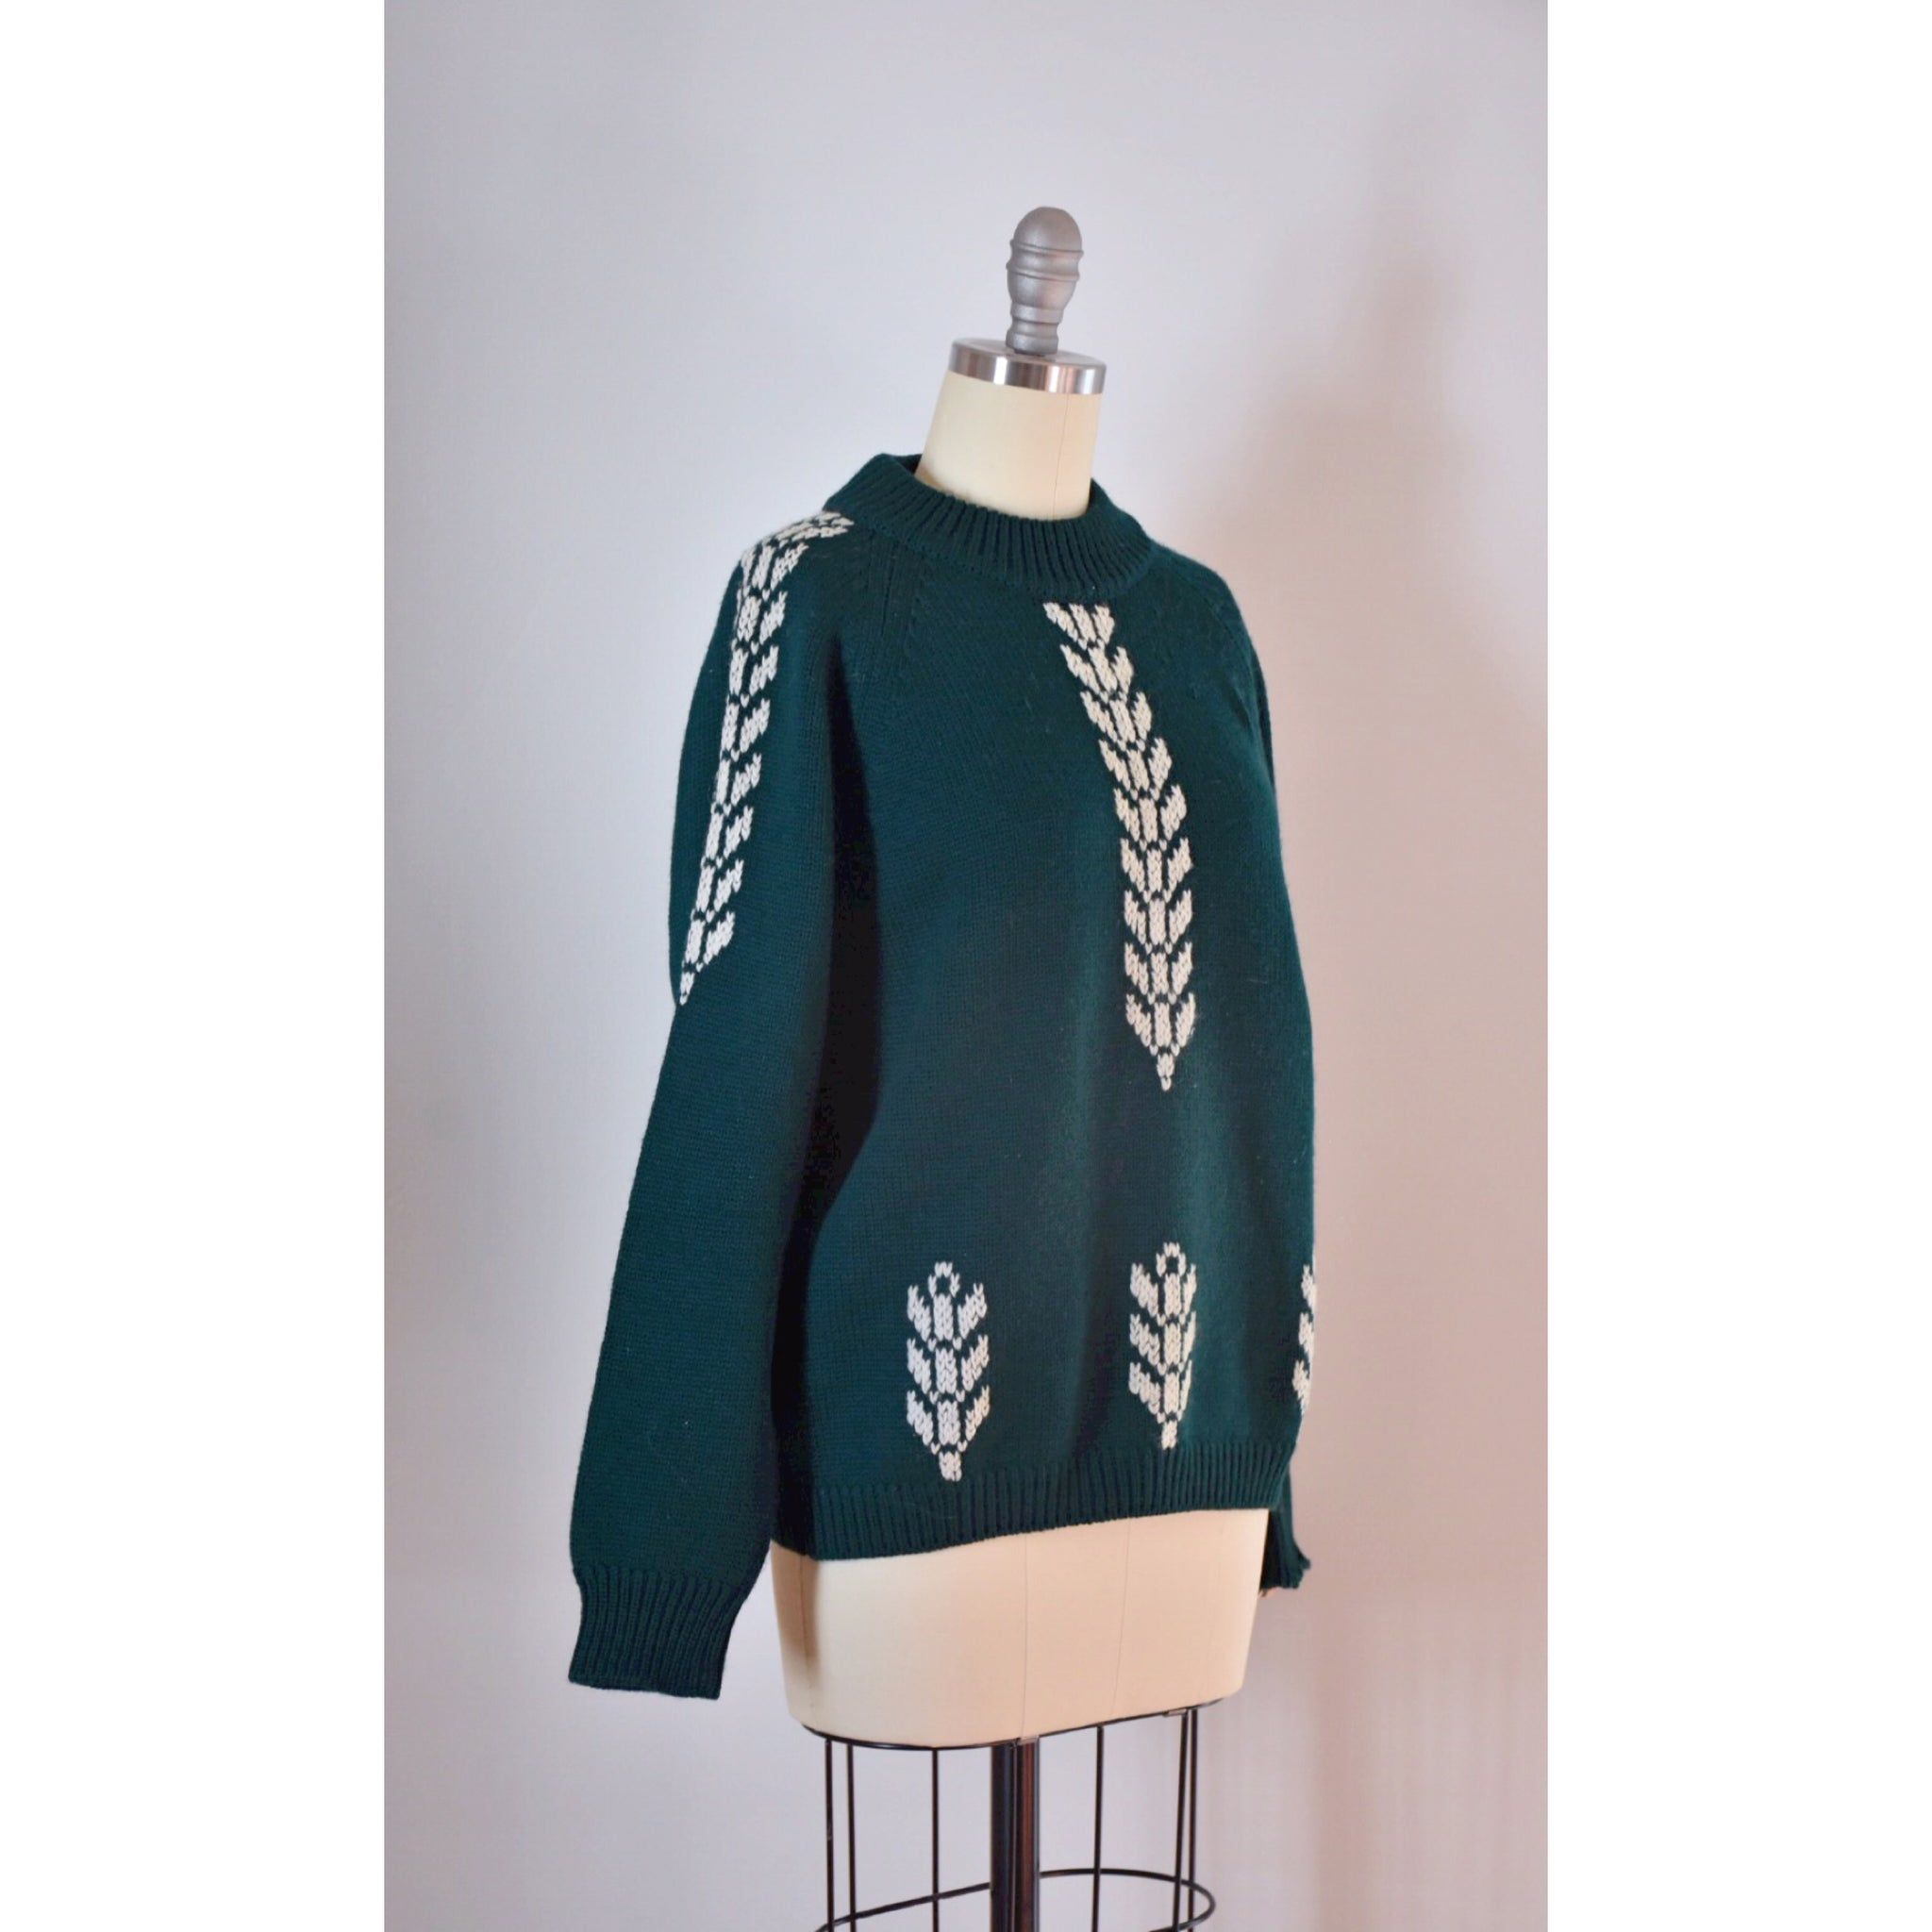 60s / 70s Vintage Alpine Wool Sweater